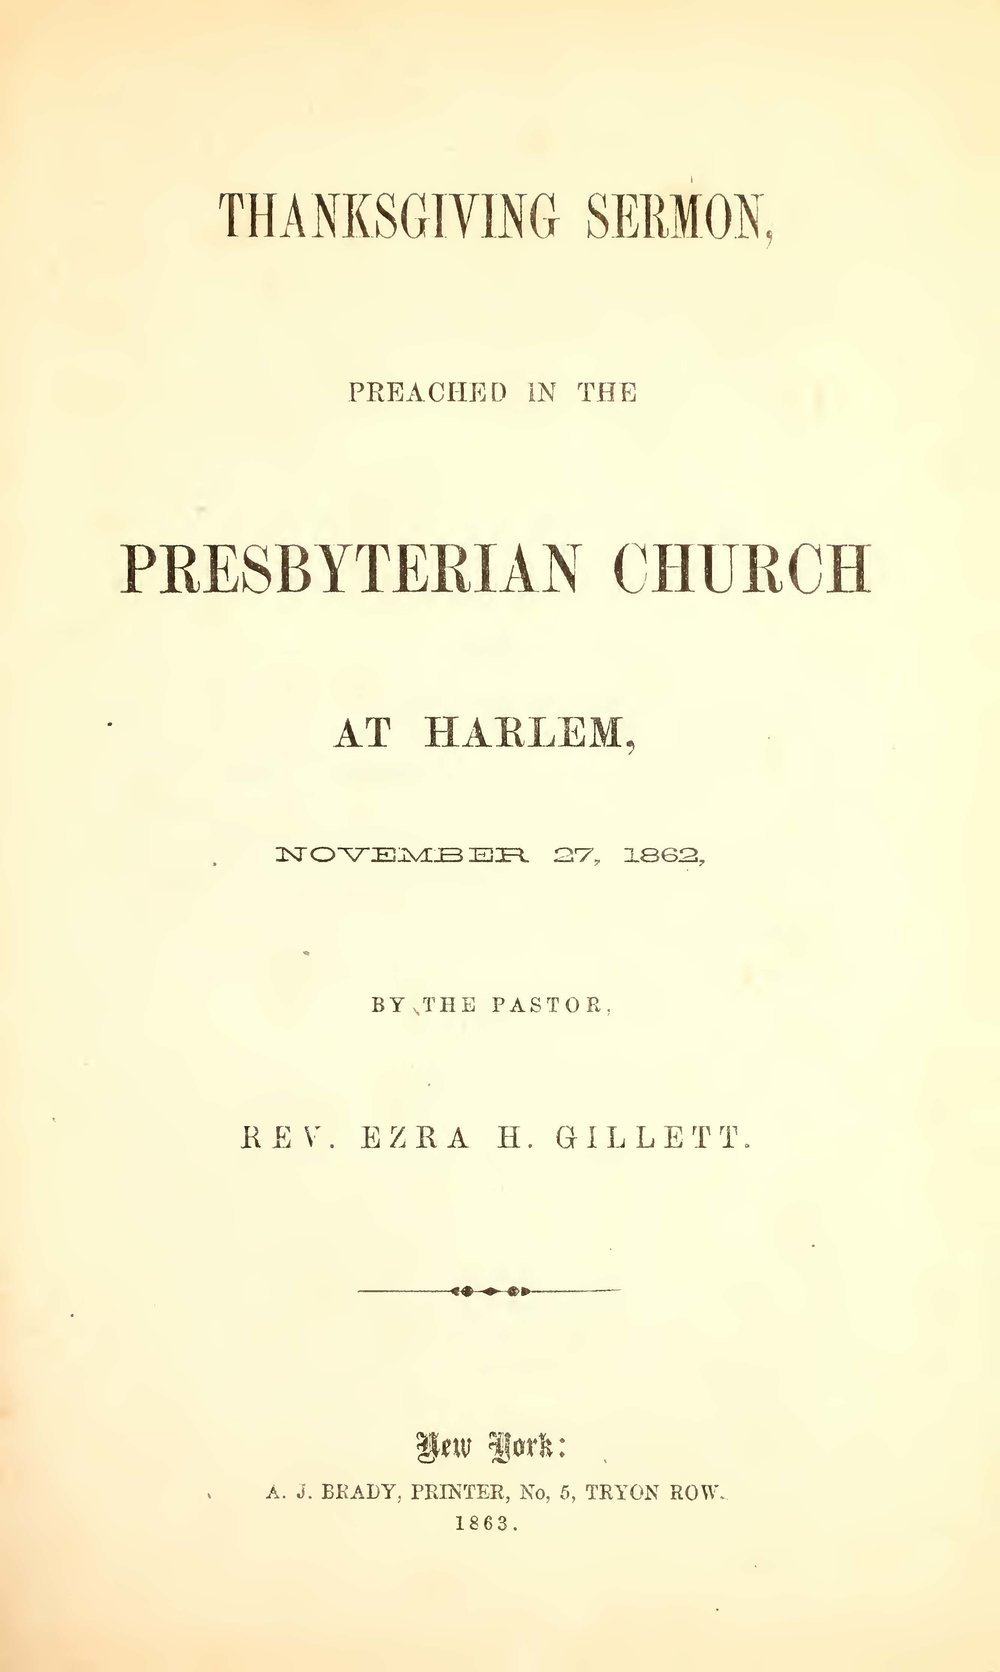 Gillett, Ezra Hall, Thanksgiving Sermon Title Page.jpg